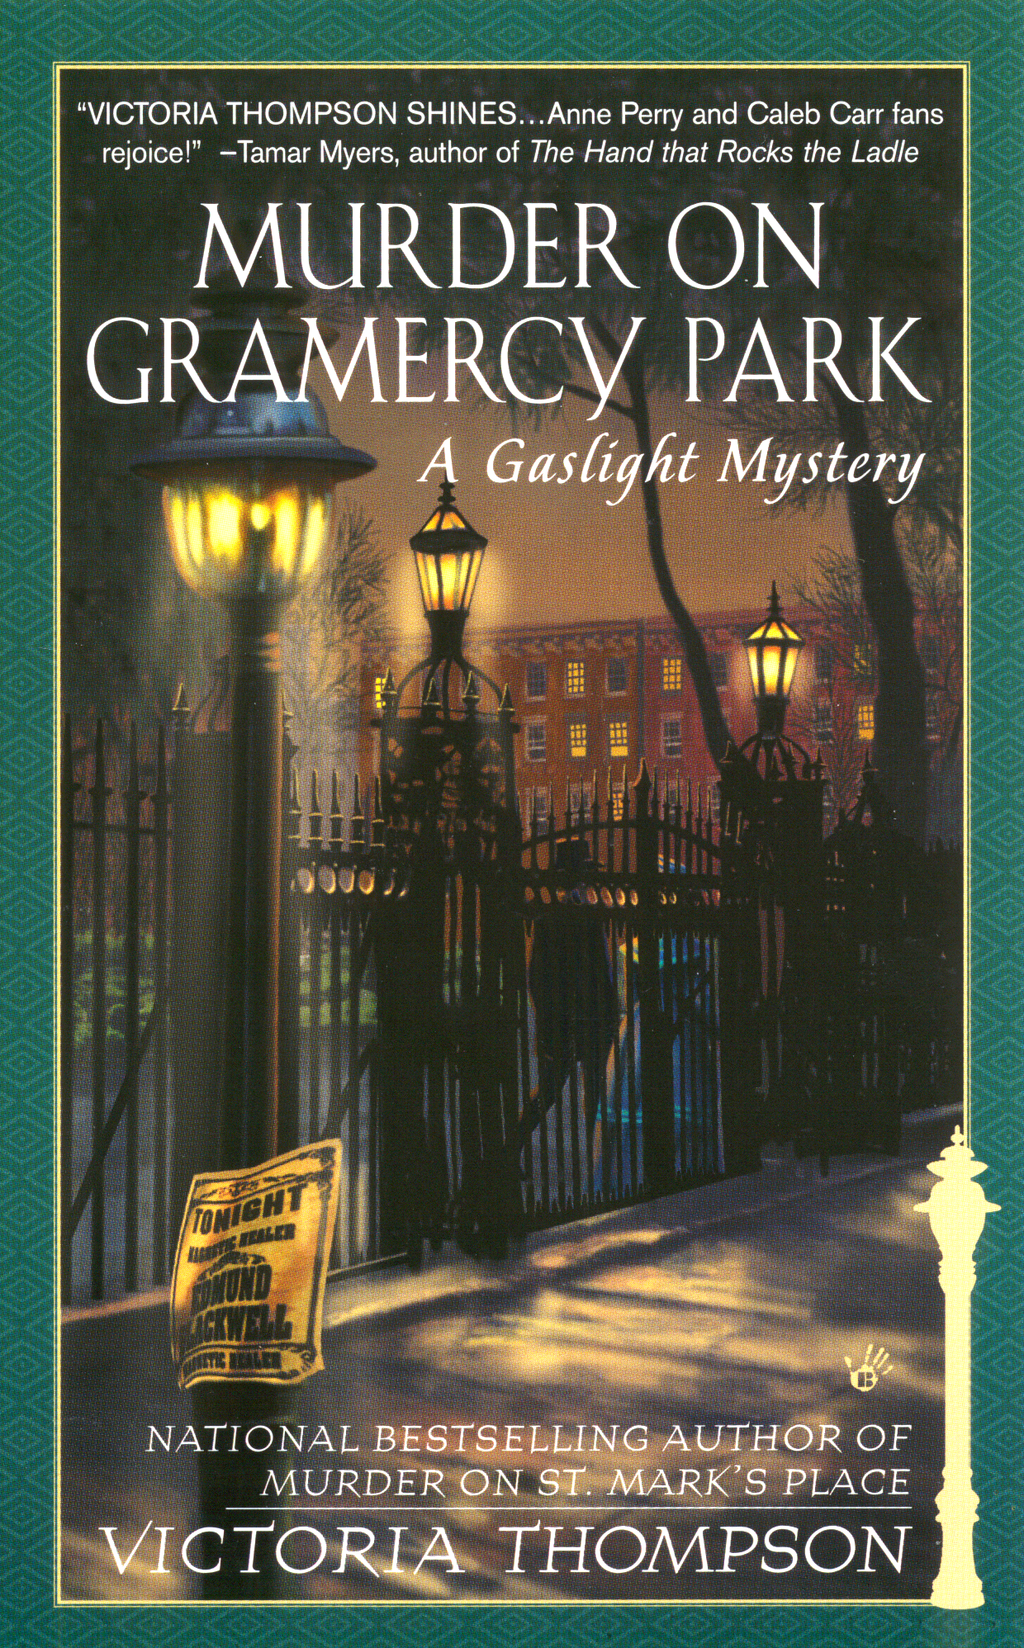 Murder on Gramercy Park